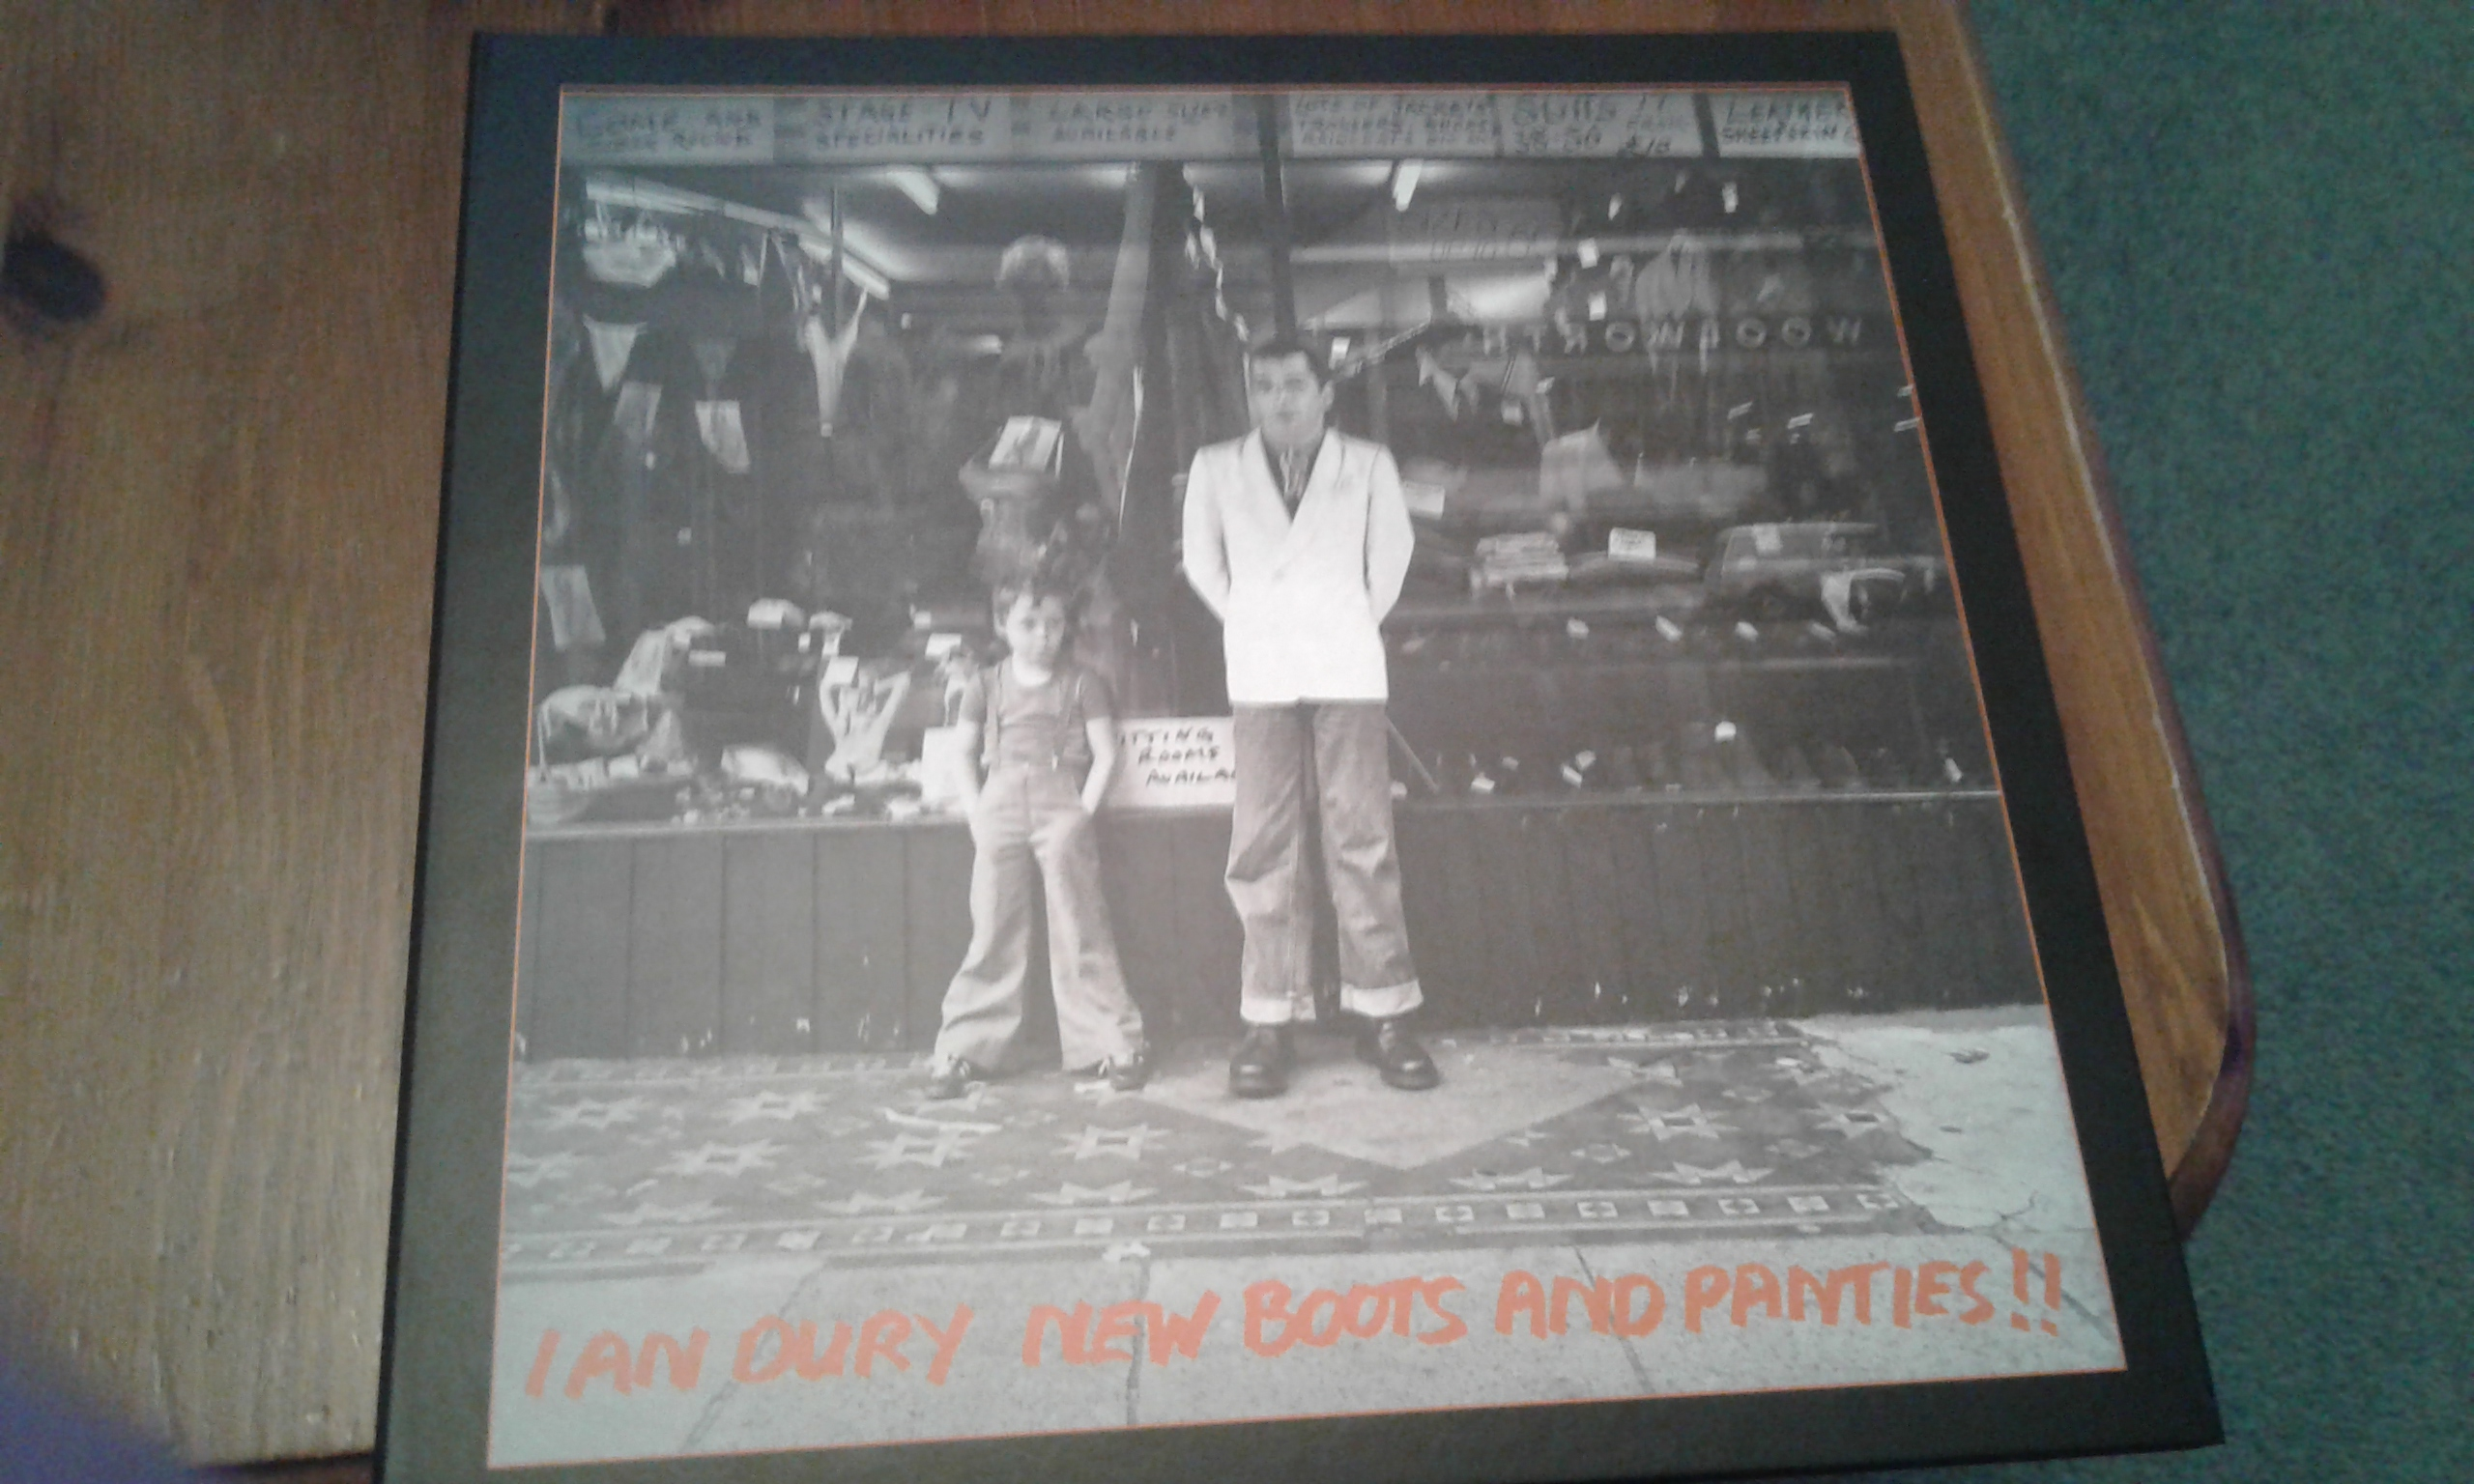 Ian Dury – New Boots And Panties!! (40th Anniversary Boxset) (Edsel Records/Demon Music Group)